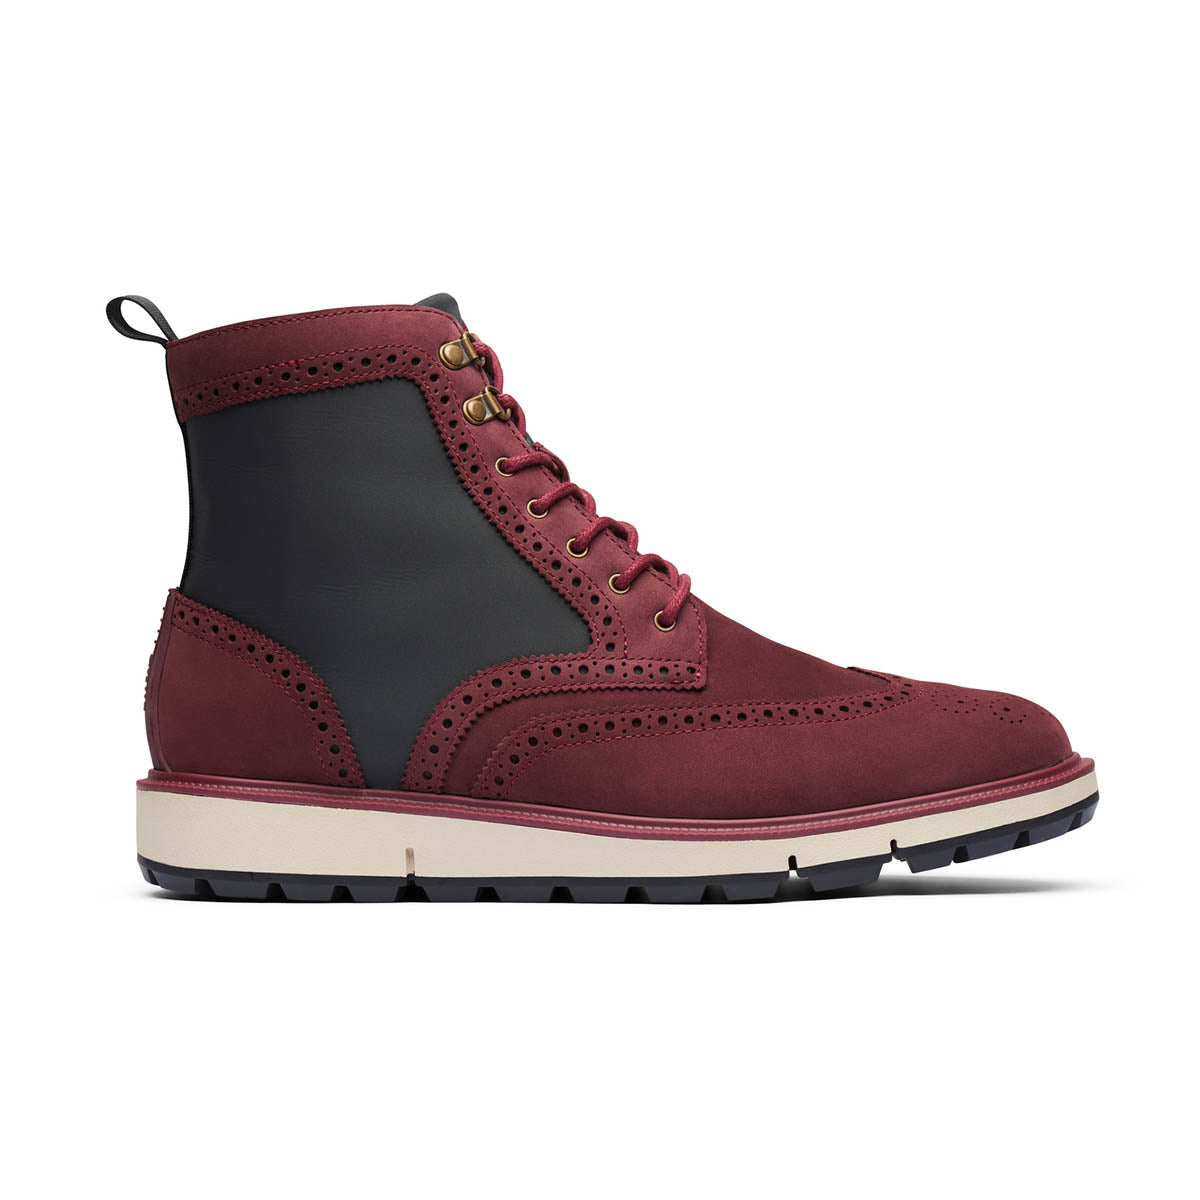 Motion Wing Tip Boot - background::white,variant::Cabernet/Gray/Black